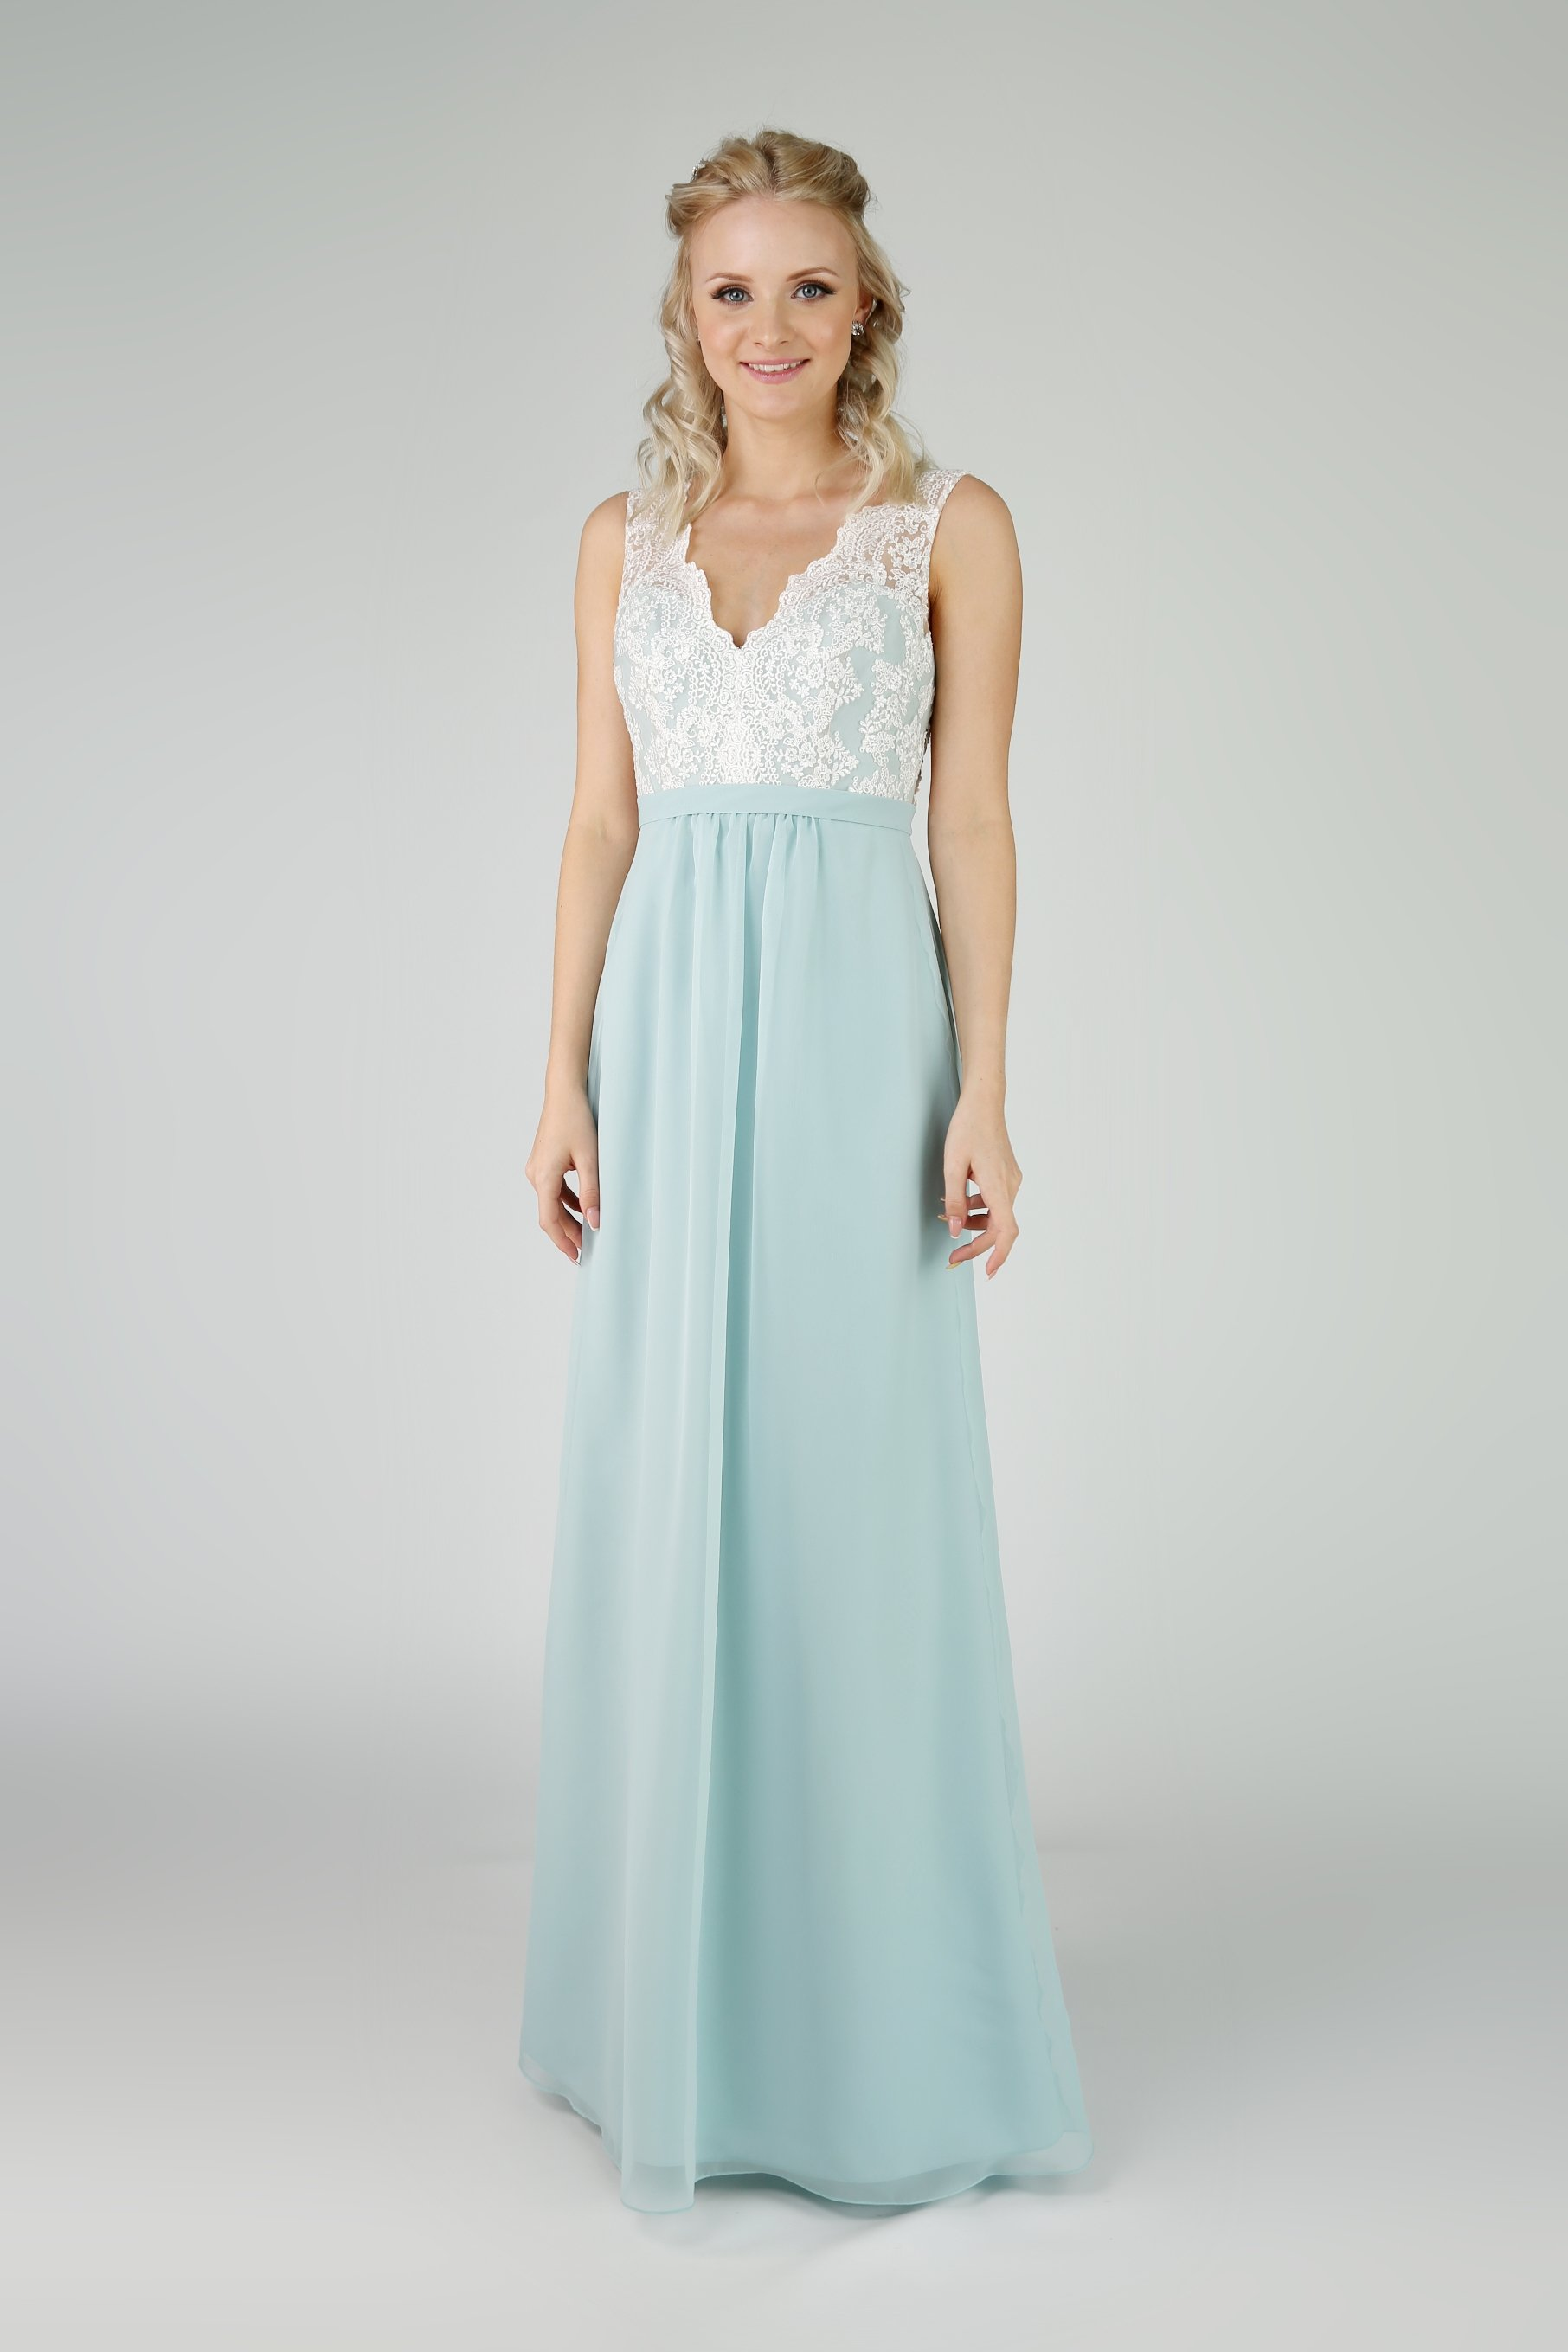 Nice Wedding Suit Hire Newcastle Images - All Wedding Dresses ...